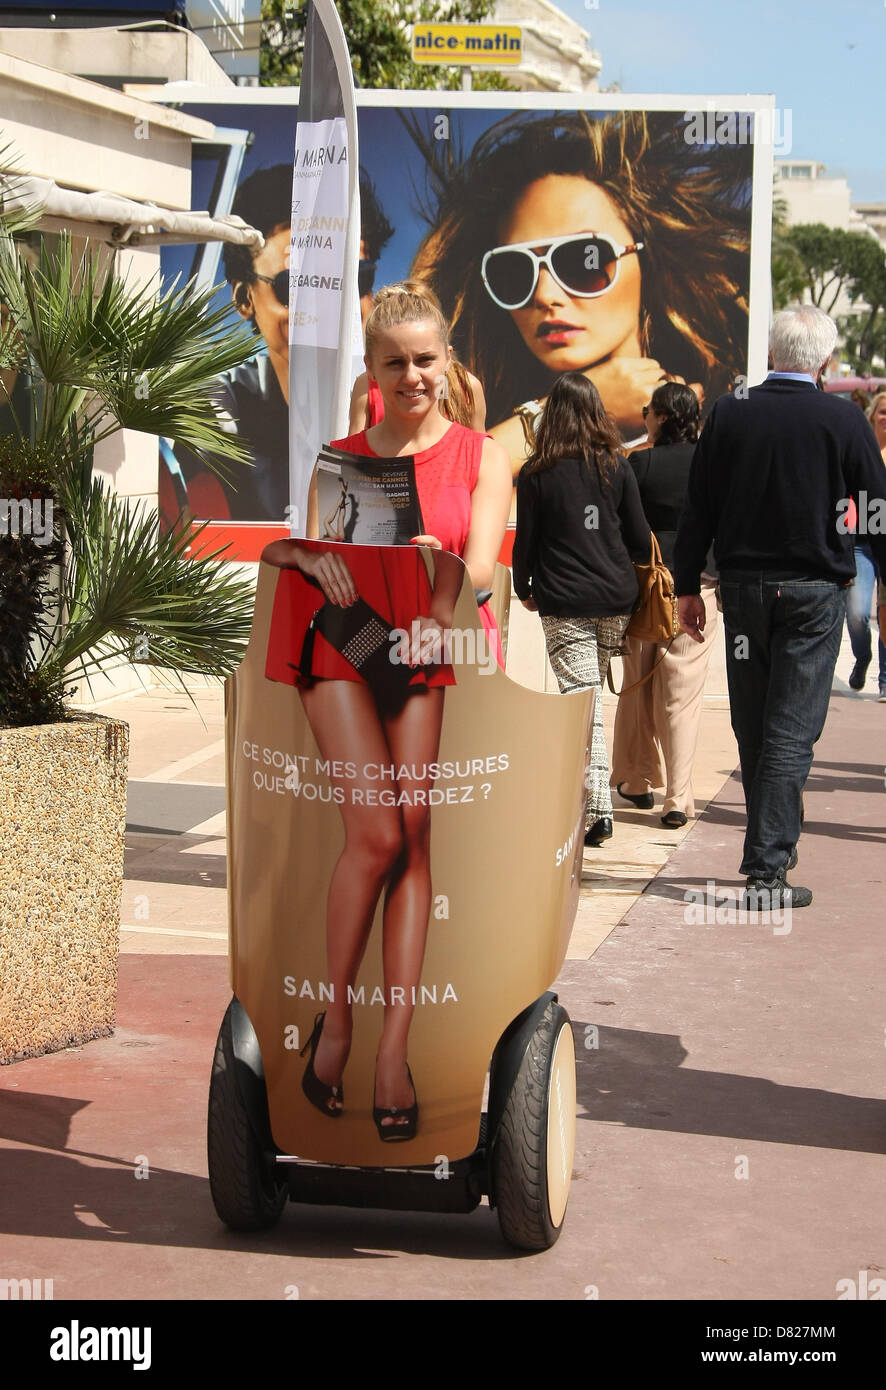 PROMOTIONAL WOMAN ON A SEGWAY MAGNUM. PHOTOCALL. CANNES FILM FESTIVAL 2013 CANNES  FRANCE 17 May 2013 - Stock Image